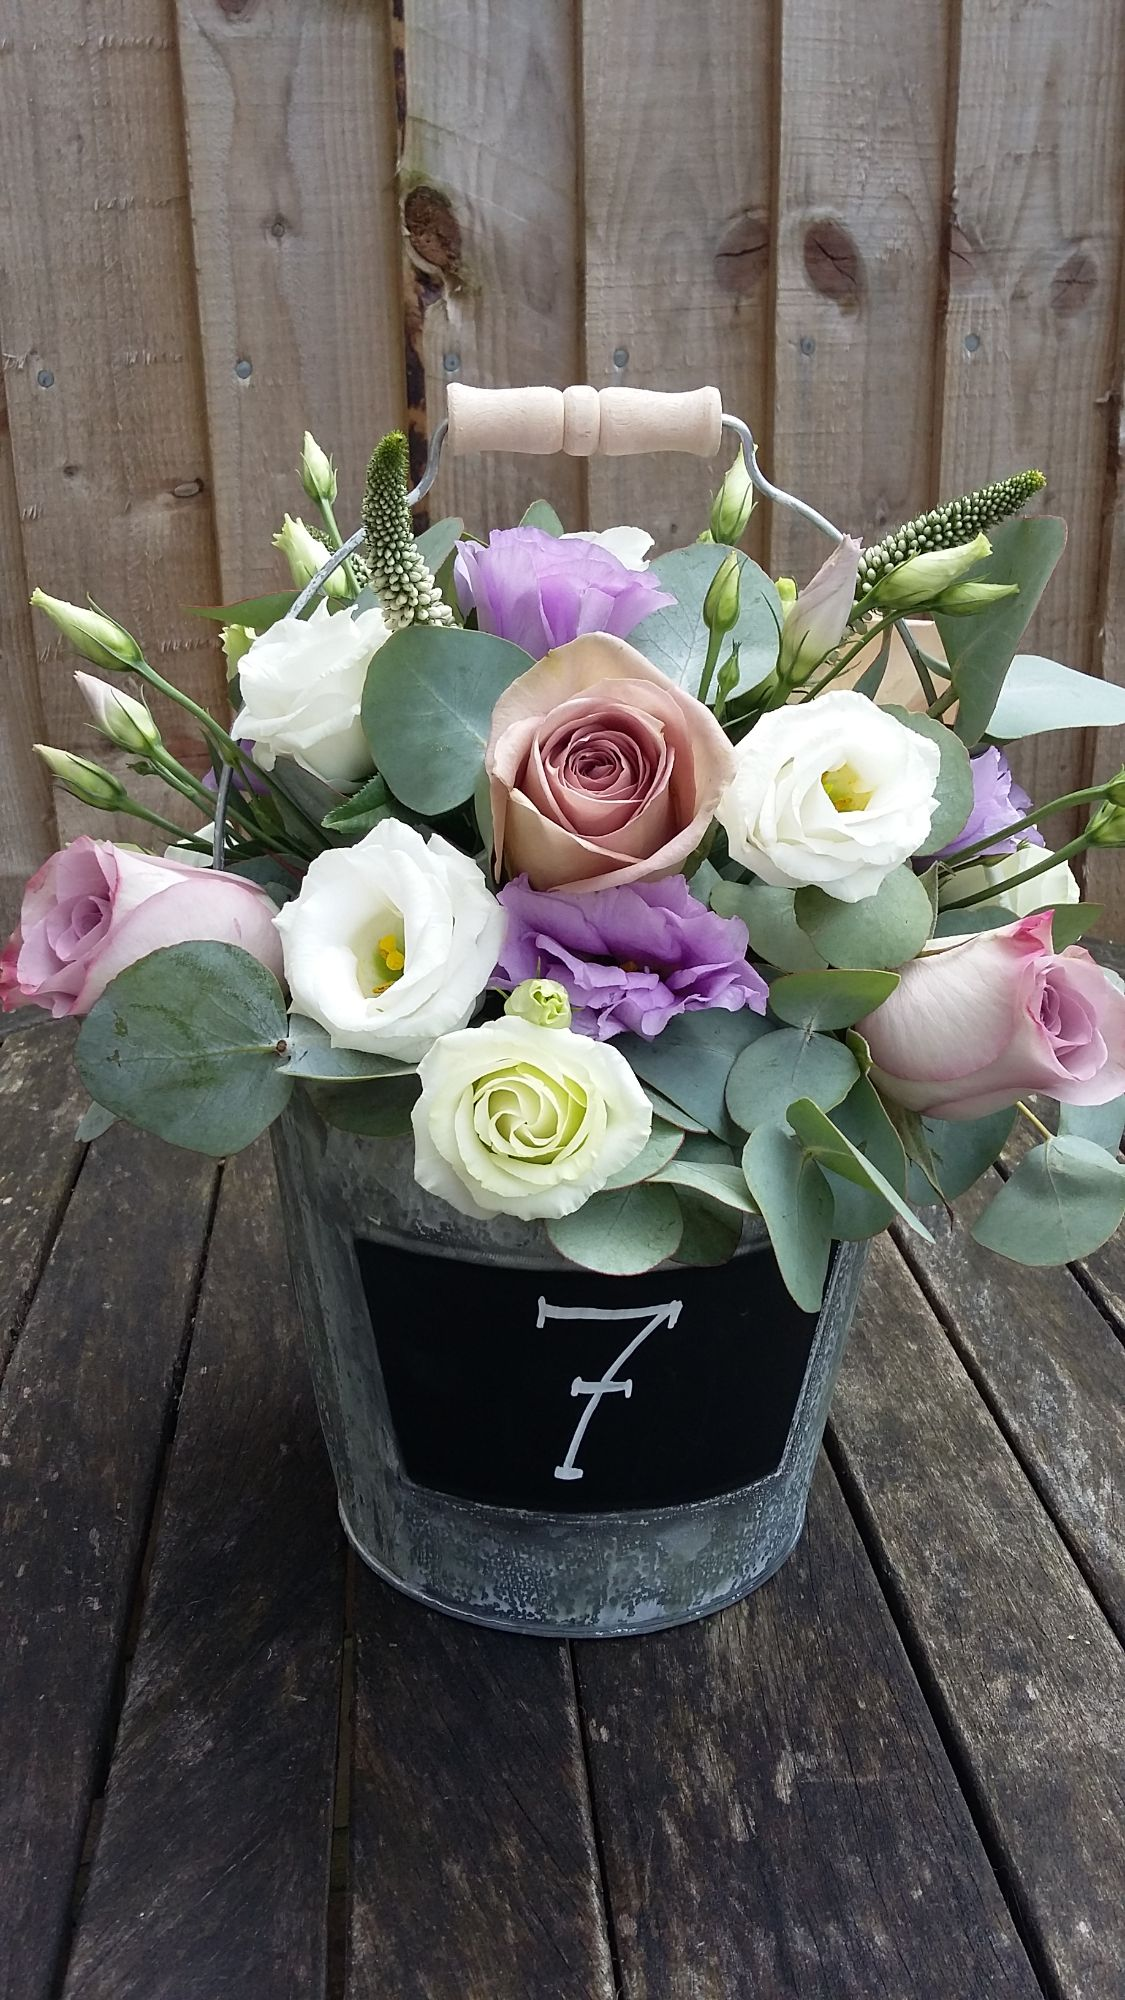 Flowers in bucket wedding